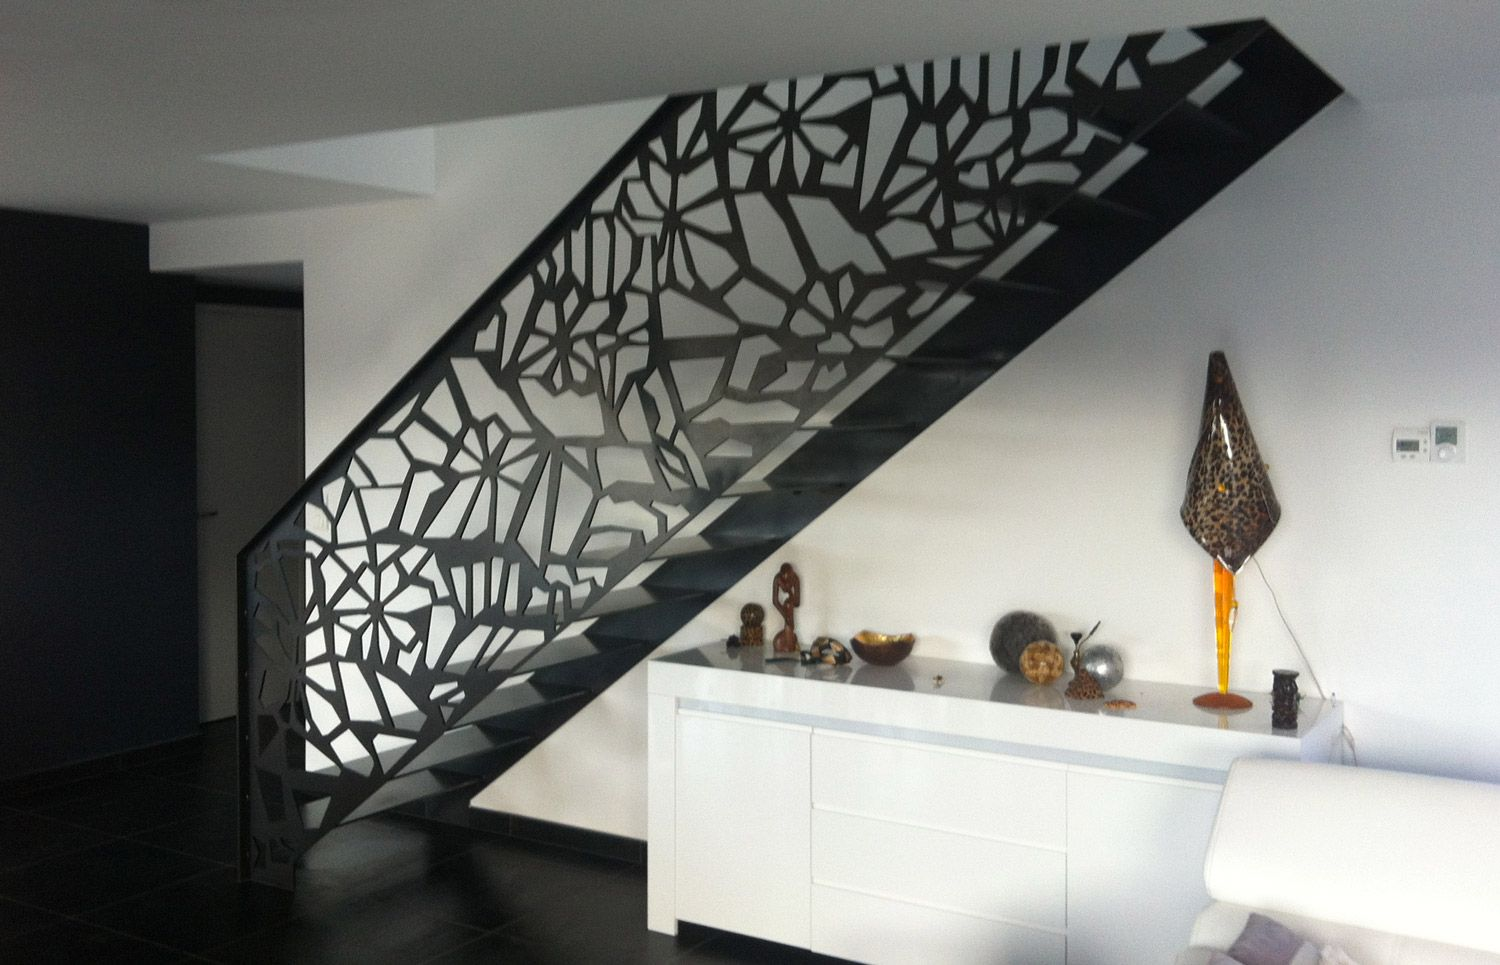 Pin by andrew higgins on metal art pinterest for Escalier alu exterieur